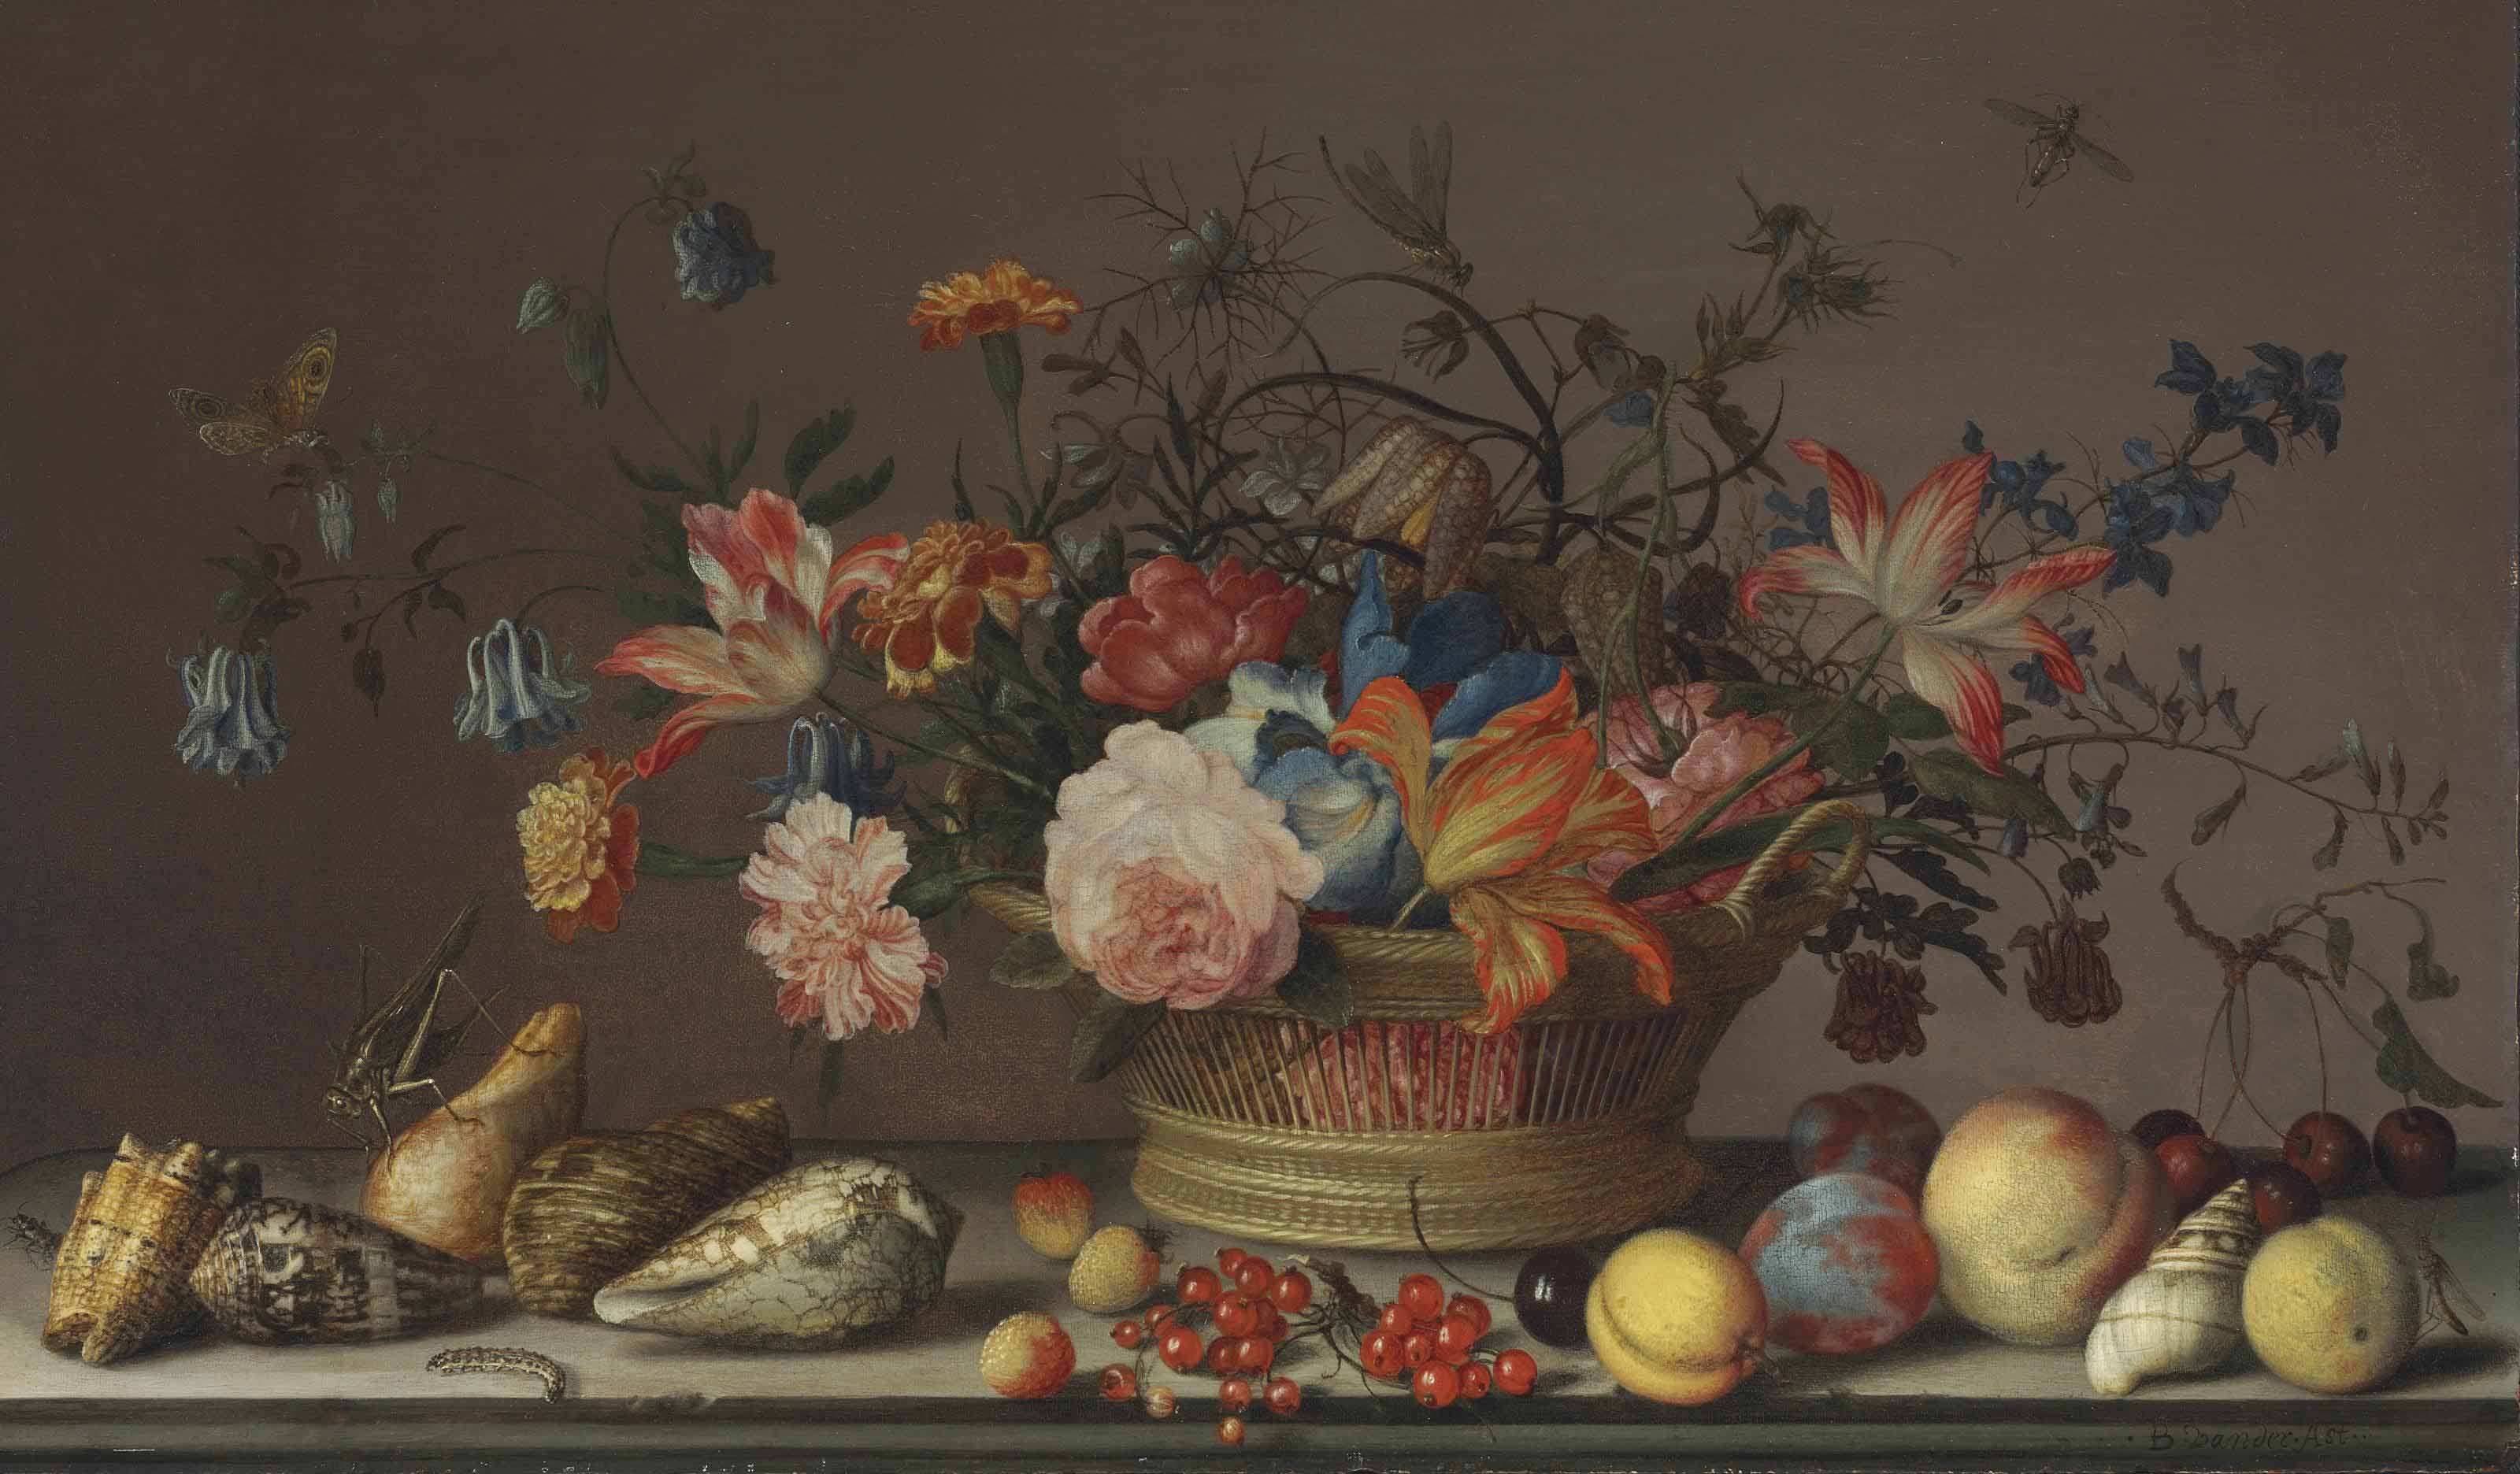 Parrot tulips, carnations, columbine, marigolds and other flowers in a woven basket, with shells, peaches, cherries, cranberries, plums, a grasshopper and other insects, on a stone ledge